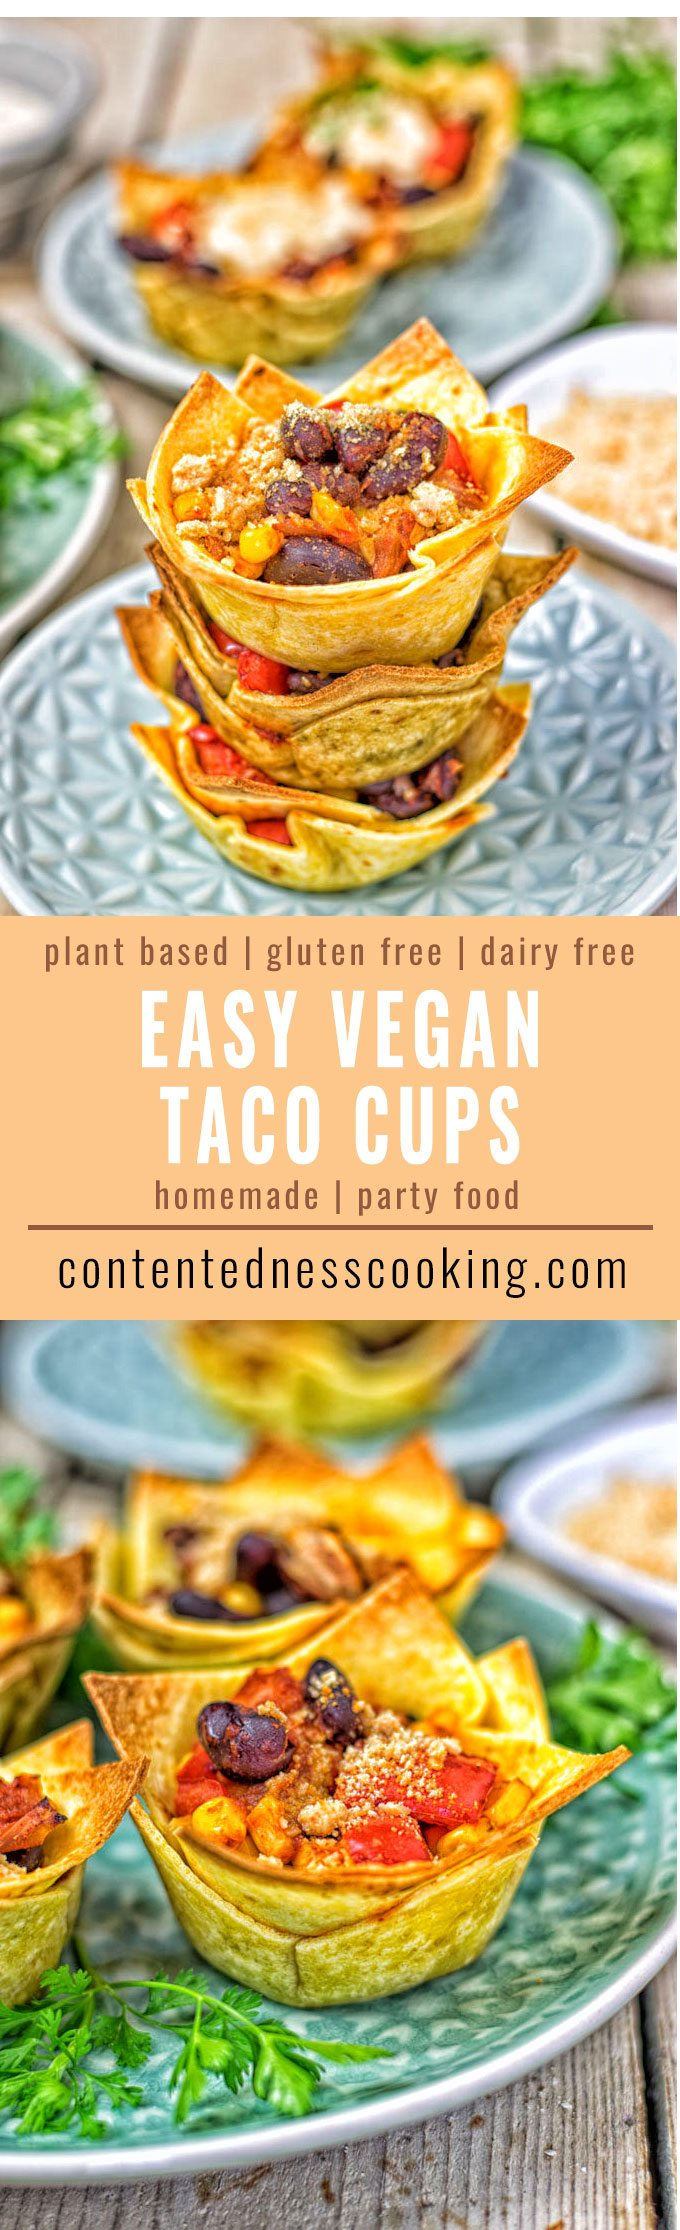 Stack of Easy Vegan Taco Cups.